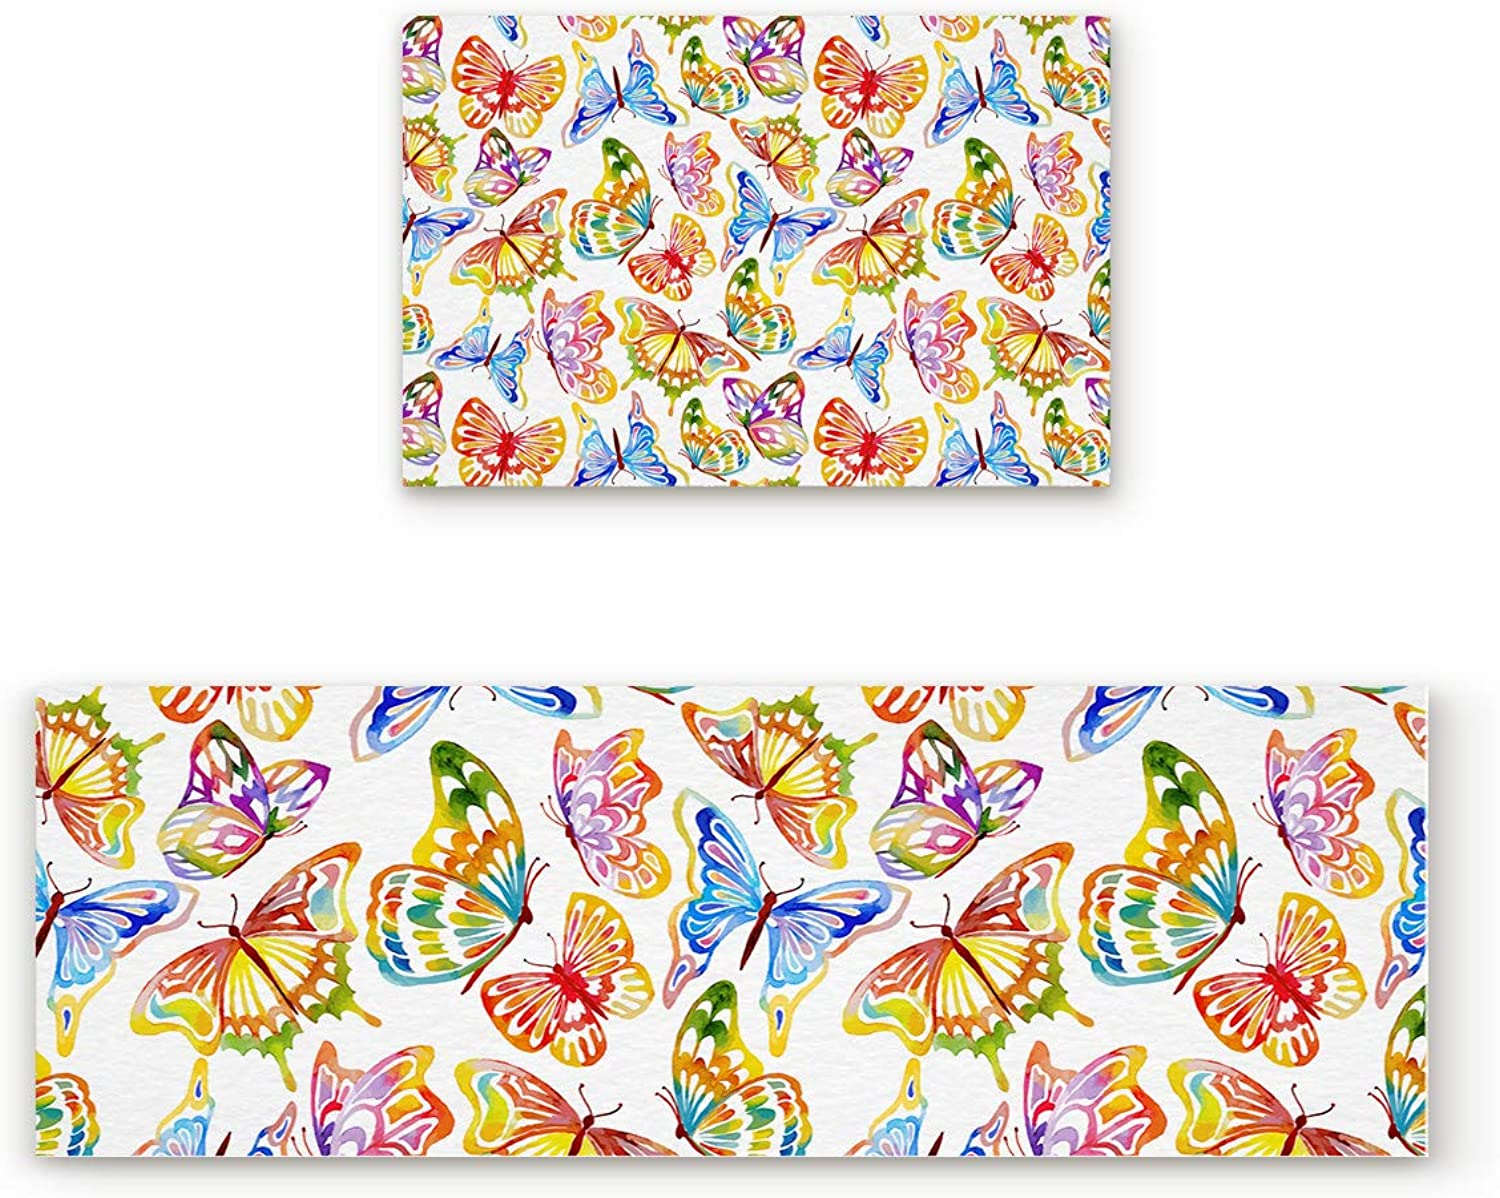 Aomike 2 Piece Non-Slip Kitchen Mat Rubber Backing Doormat colorful Vivid Butterfly Runner Rug Set, Hallway Living Room Balcony Bathroom Carpet Sets (19.7  x 31.5 +19.7  x 47.2 )